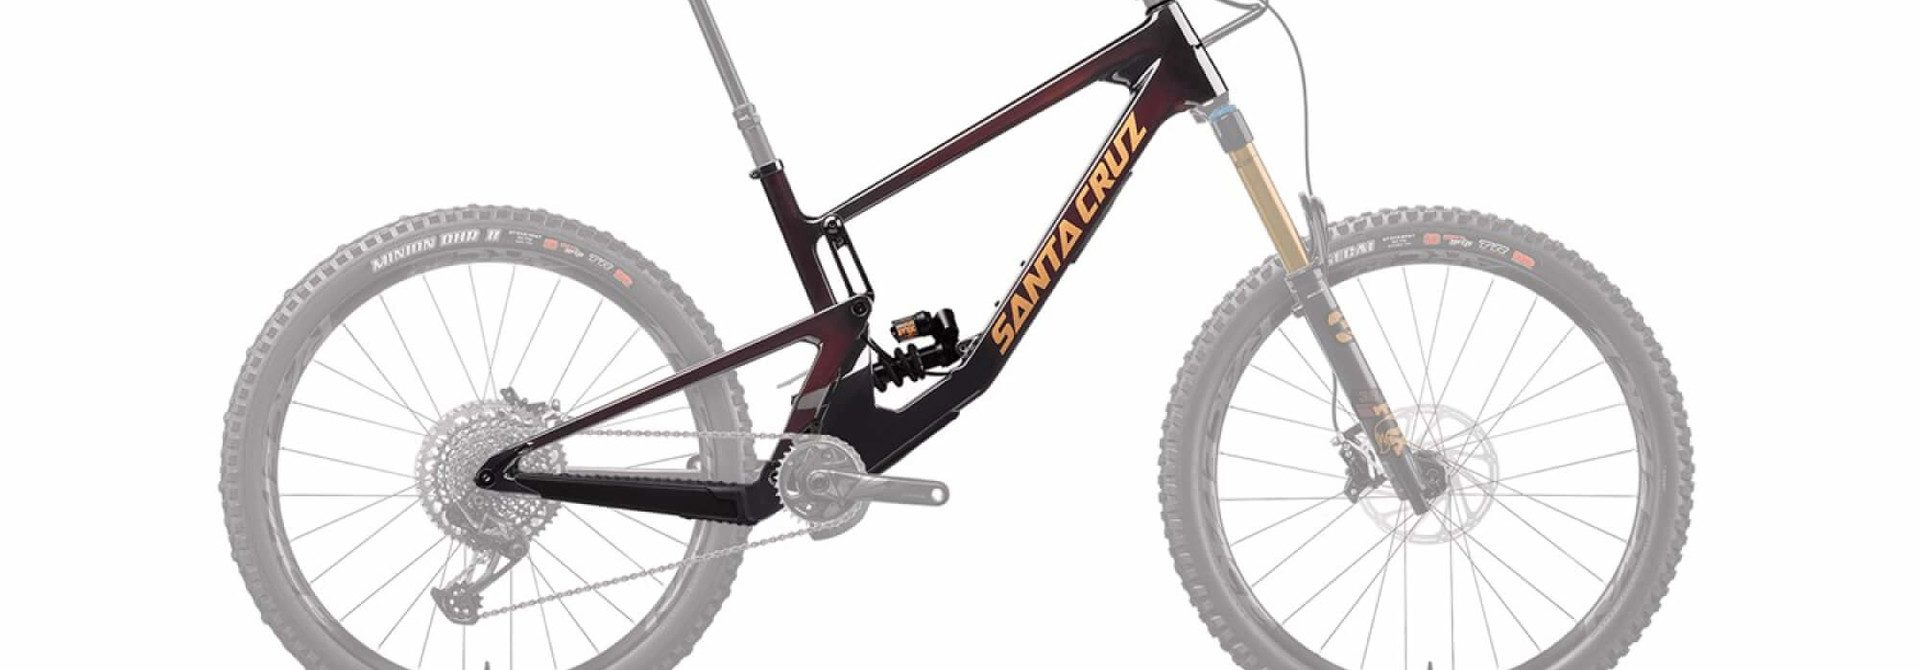 Nomad 5.0 CC 27.5 Frame Fox DHX2 Factory Coil Oxblood 2021